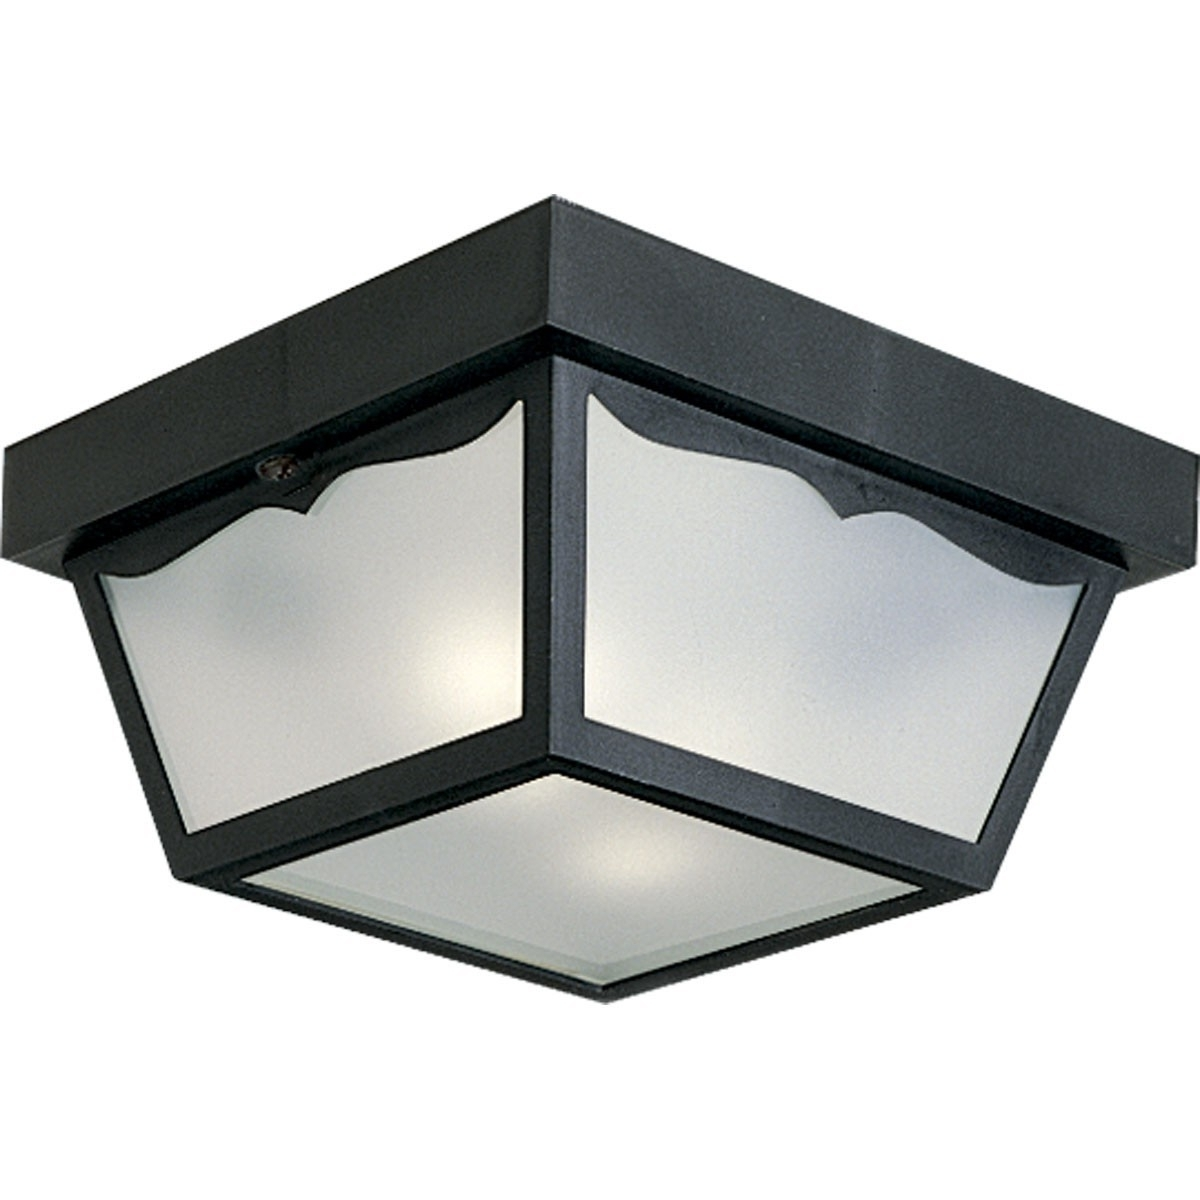 Most Recent 60W Outdoor Flush Mount Non Metallic Ceiling Light – Progress Regarding Outdoor Ceiling Lighting Fixtures (View 16 of 20)